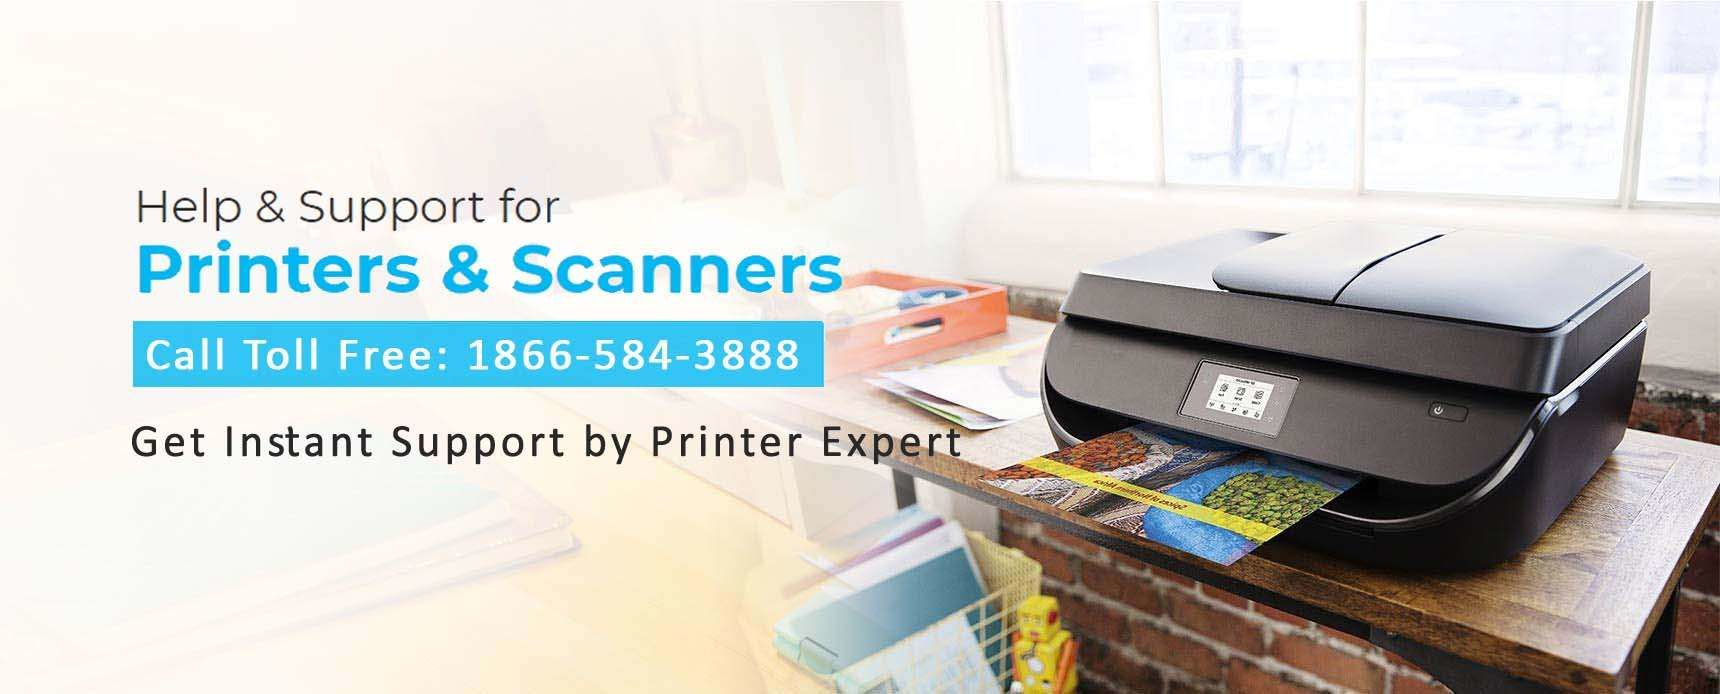 Hp All Printer Support In USA | HP Printer Support Number